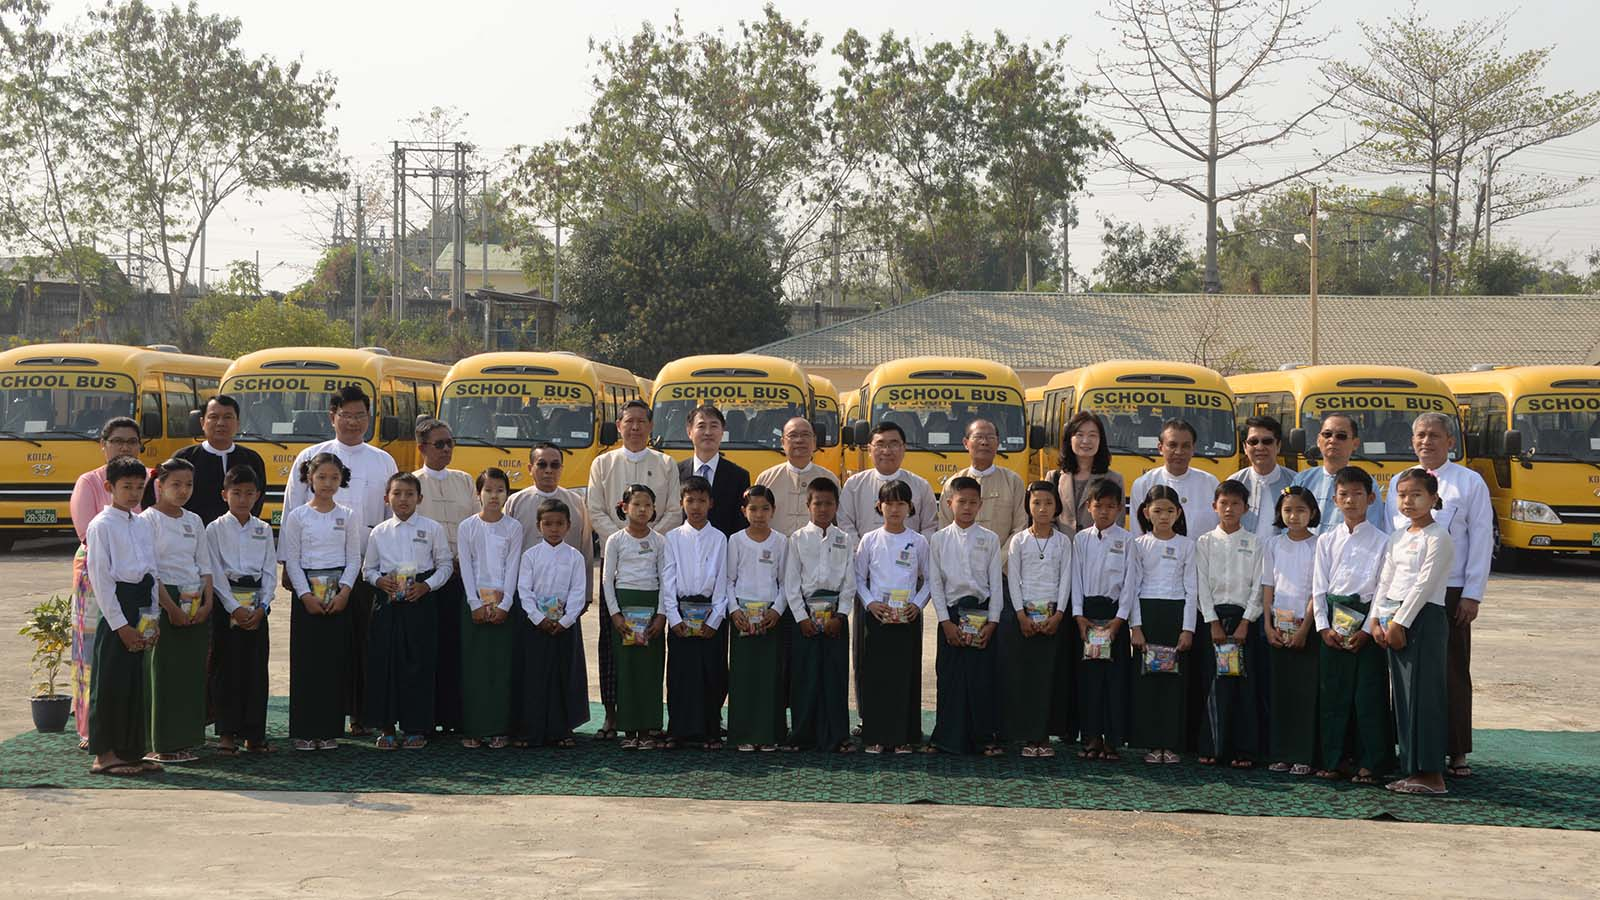 Union Minister Dr Myo Thein Gyi, donors  from Korea International Cooperation Agency (KOICA) and students pose for a photo in front of donated school buses in Nay Pyi Taw. Photo: MNA